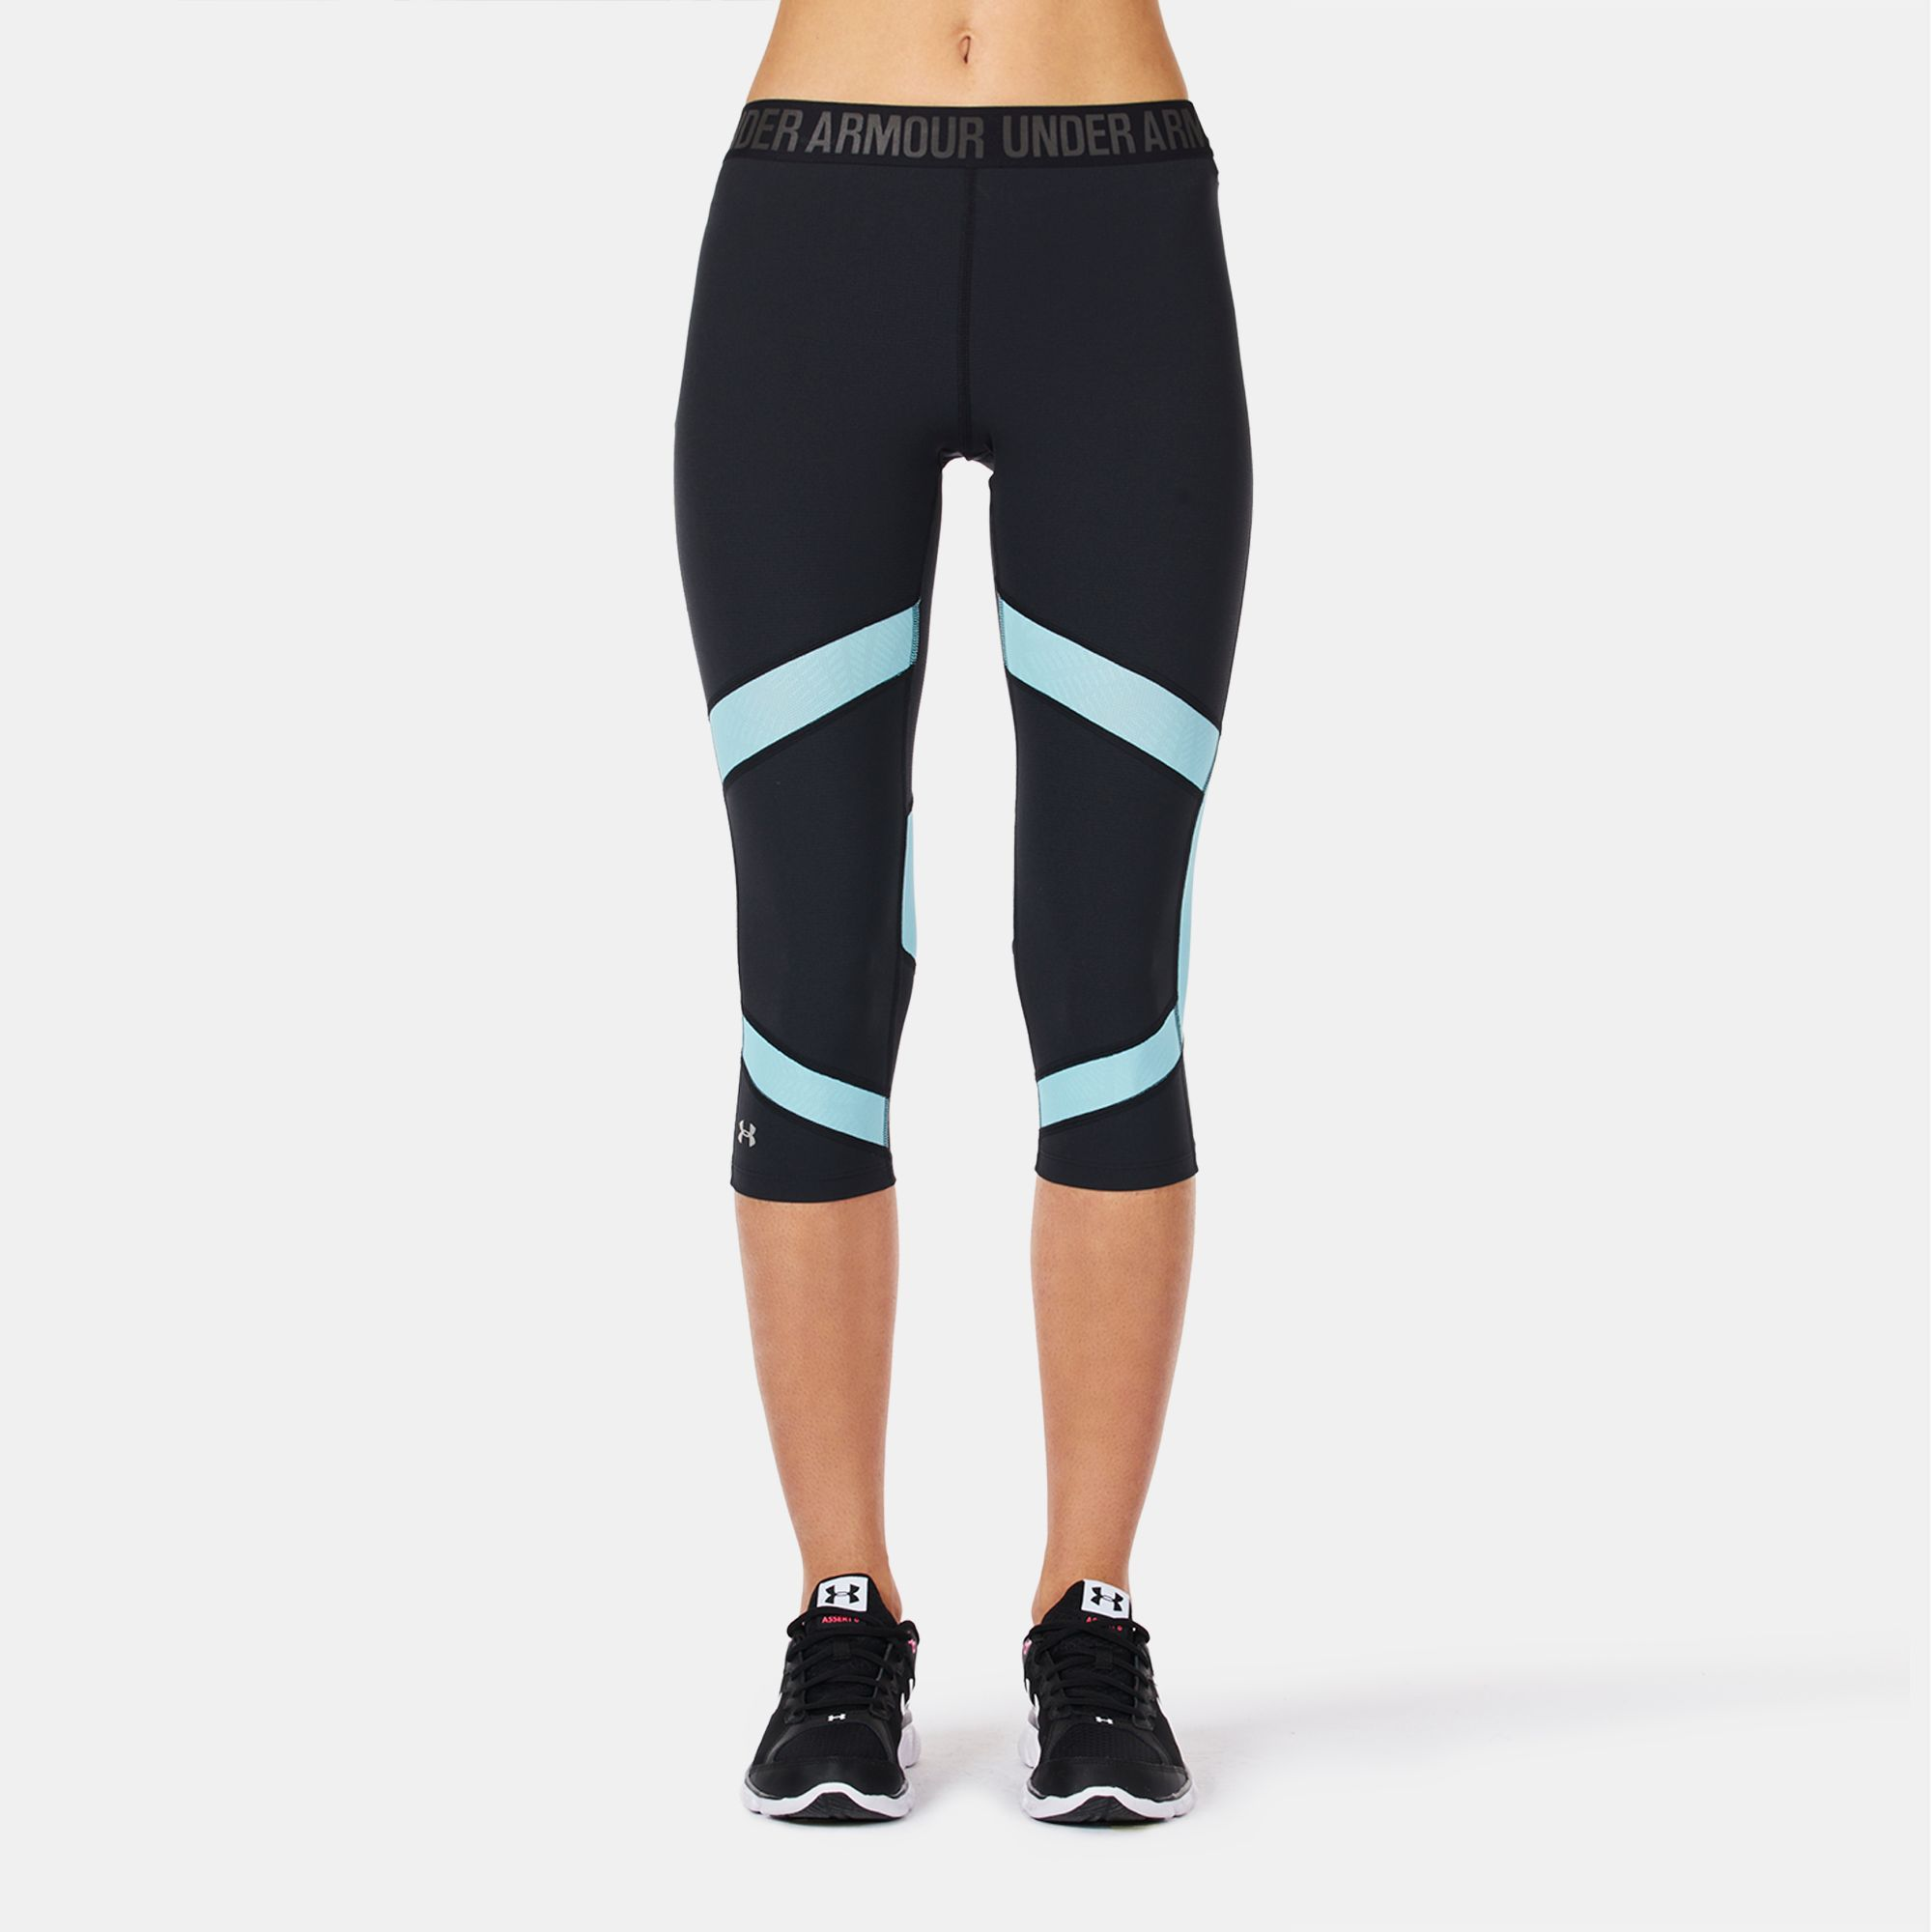 d5a77369d2 Shop Black Under Armour CoolSwitch Capri Leggings for Womens by ...